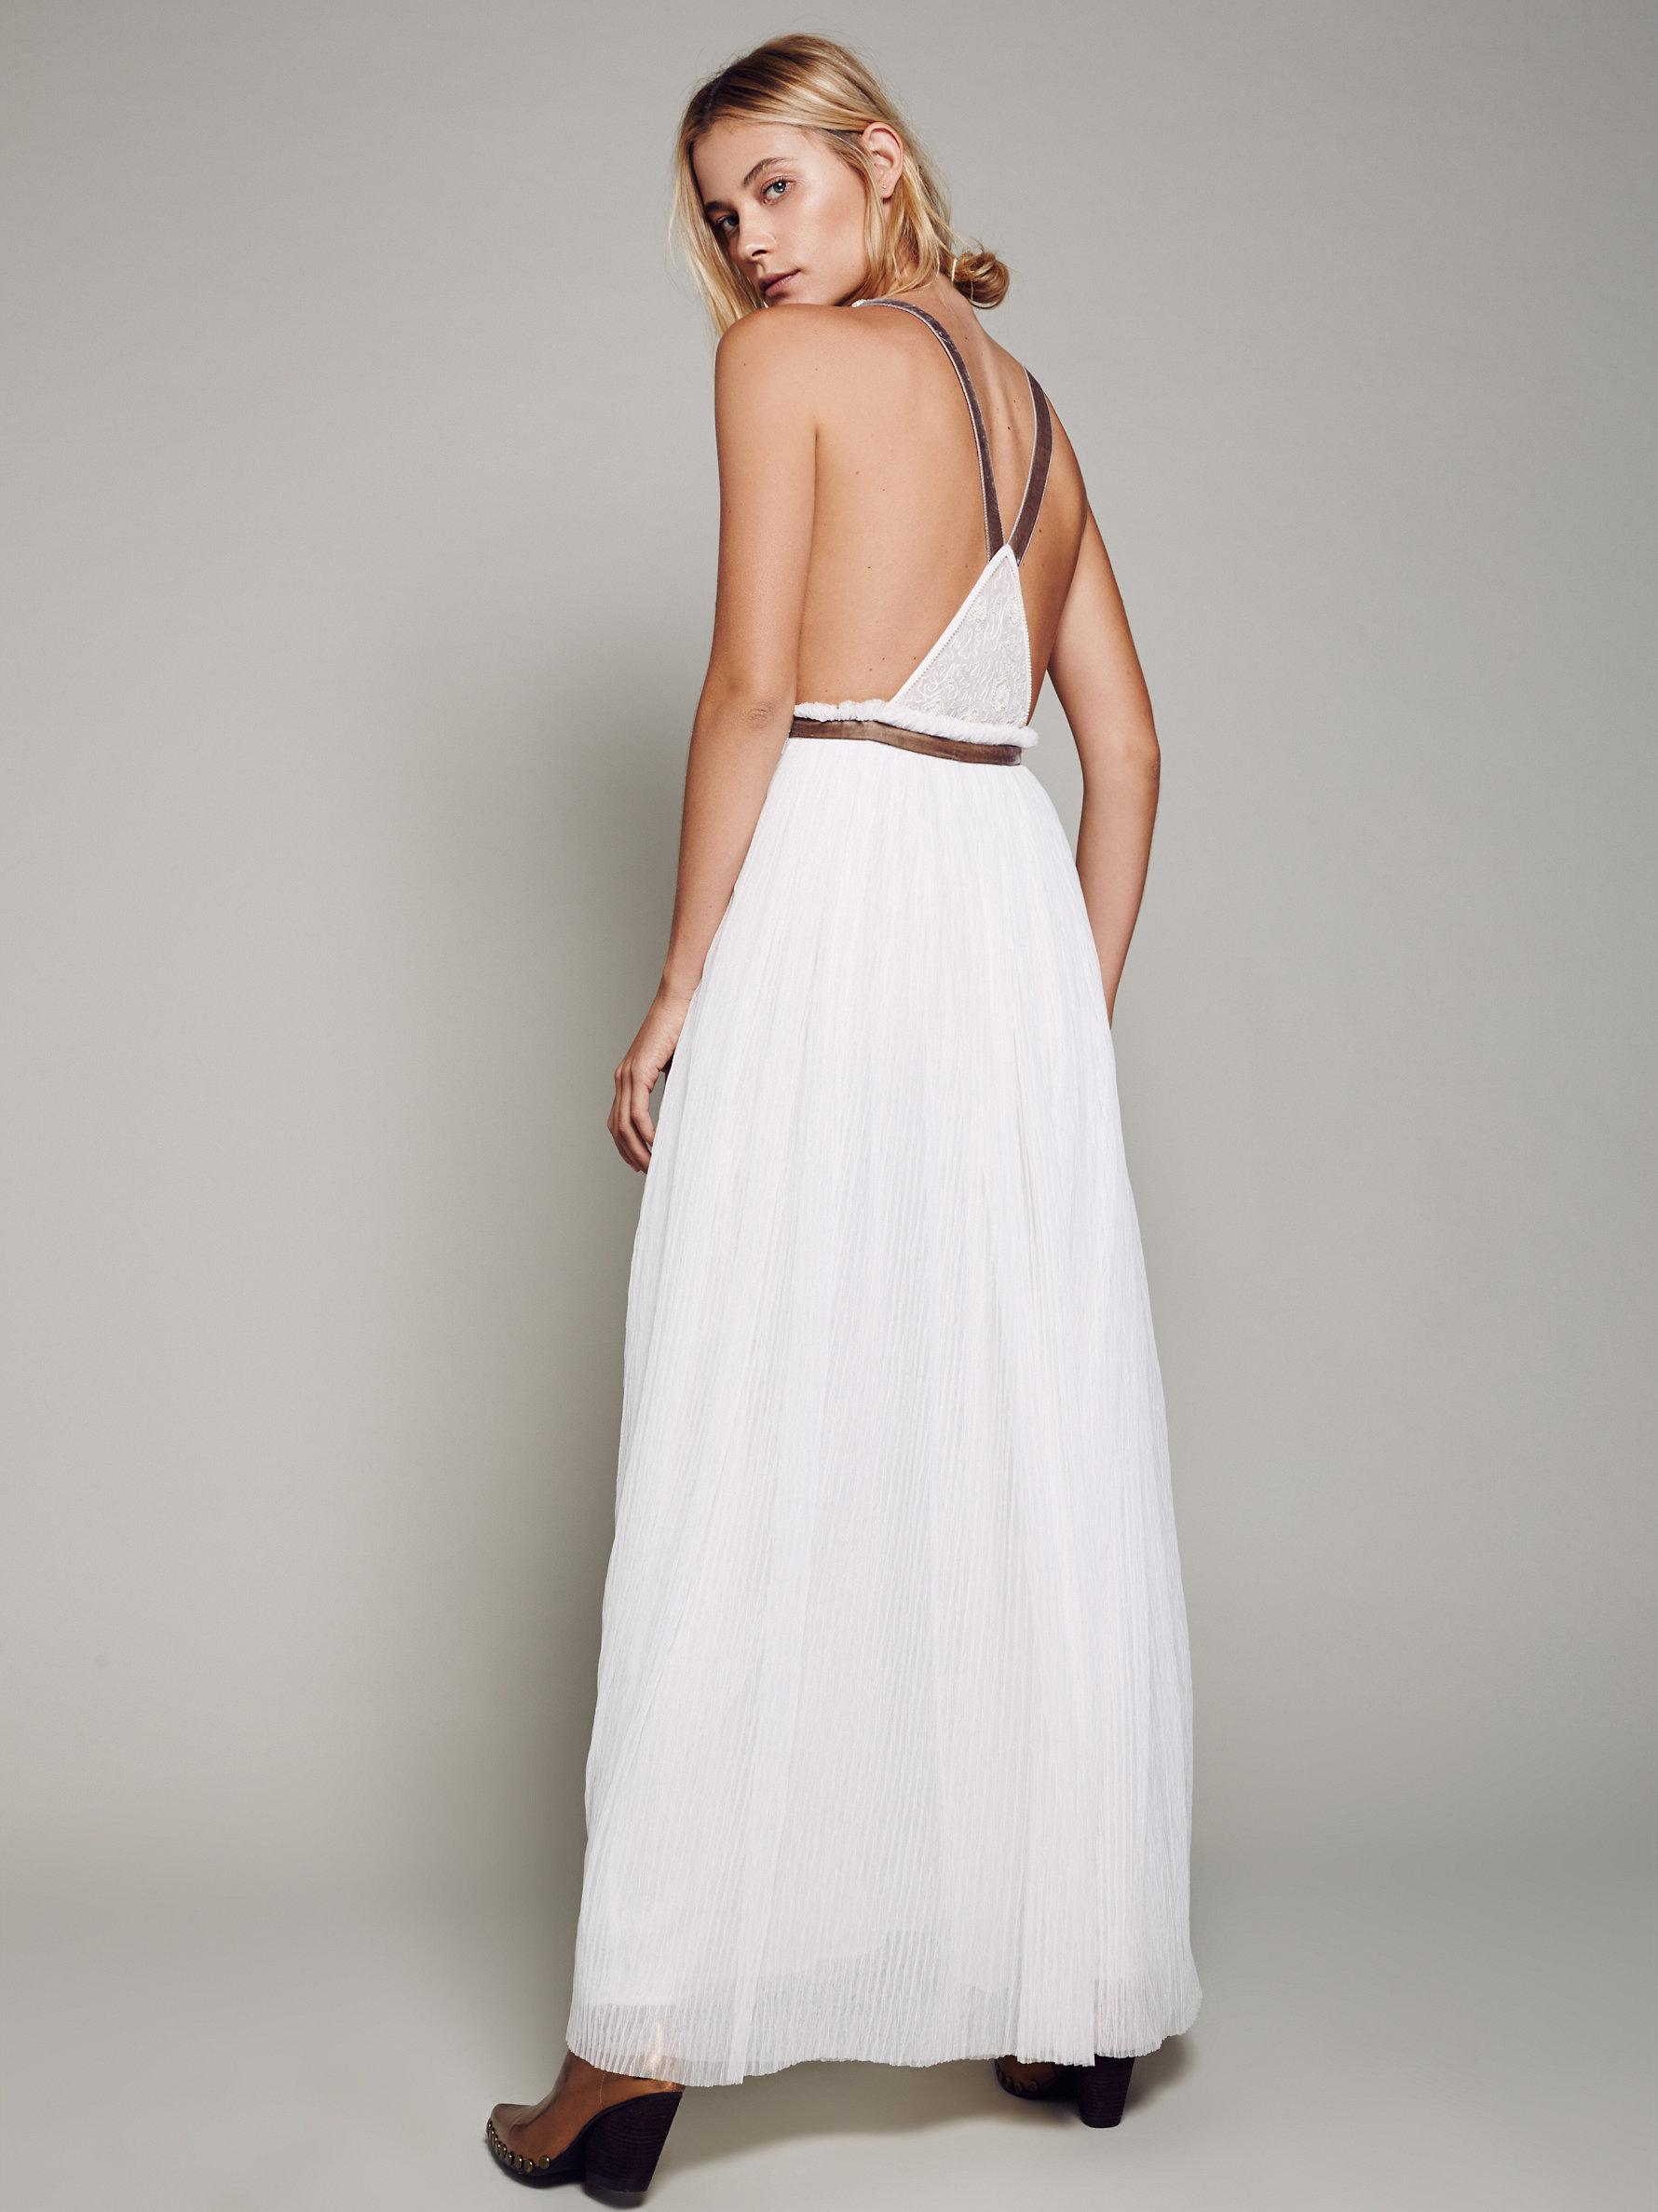 Lyst - Free People Cleo Maxi Dress in White